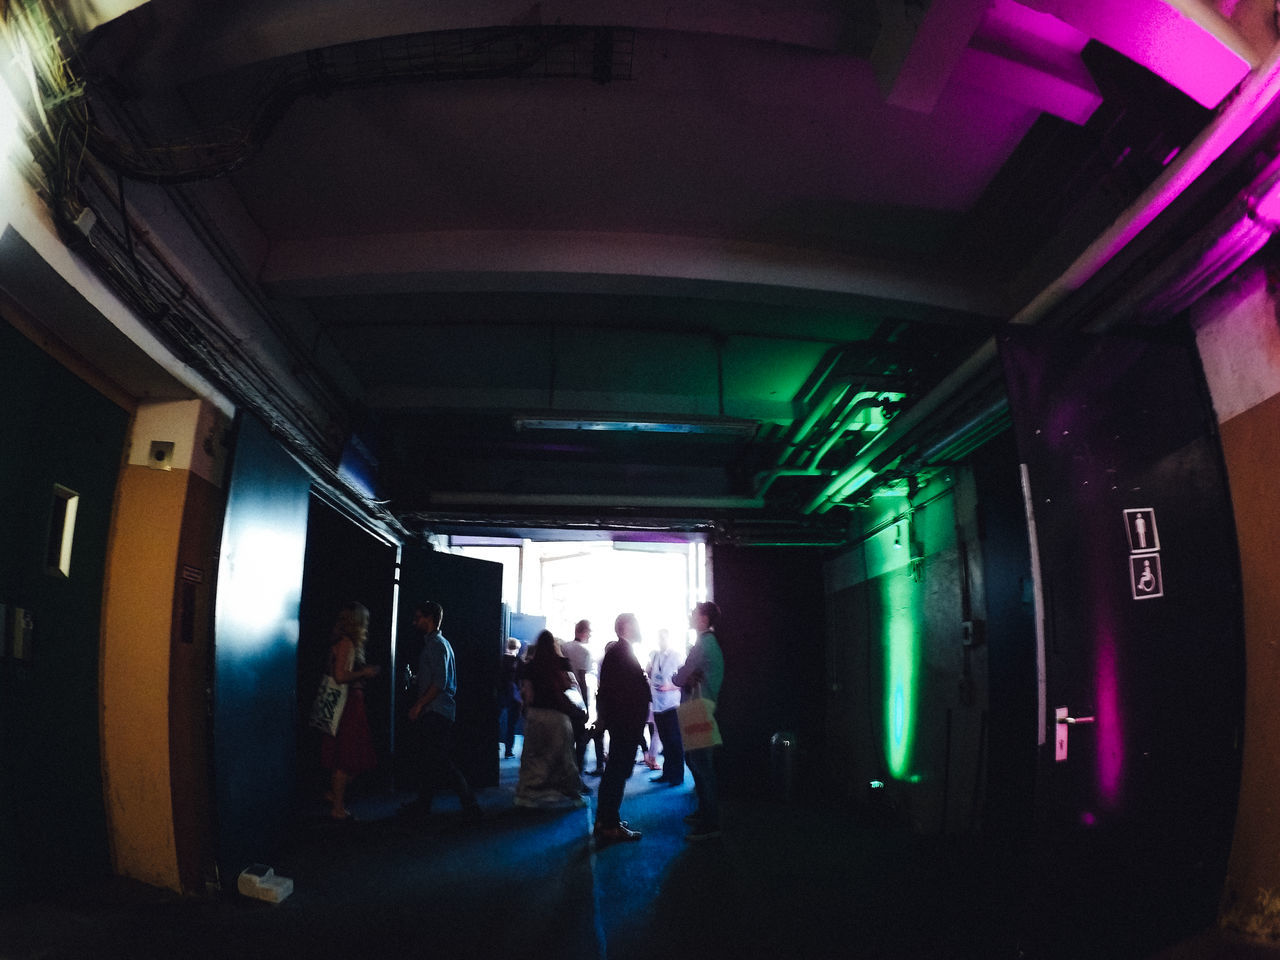 Snap a Stranger Envision The Future The Innovator Shaping The Future. Together. Architecture Atmosphere Capture The Moment Ceiling Colors Colour Of Life Enjoying Life Embrace Urban Life EyeEm Gallery Fisheye Getting Inspired Hello World Illuminated Lifestyles Light And Shadow People Perspective Silhouette Street Photography TakeoverContrast Urban Exploration